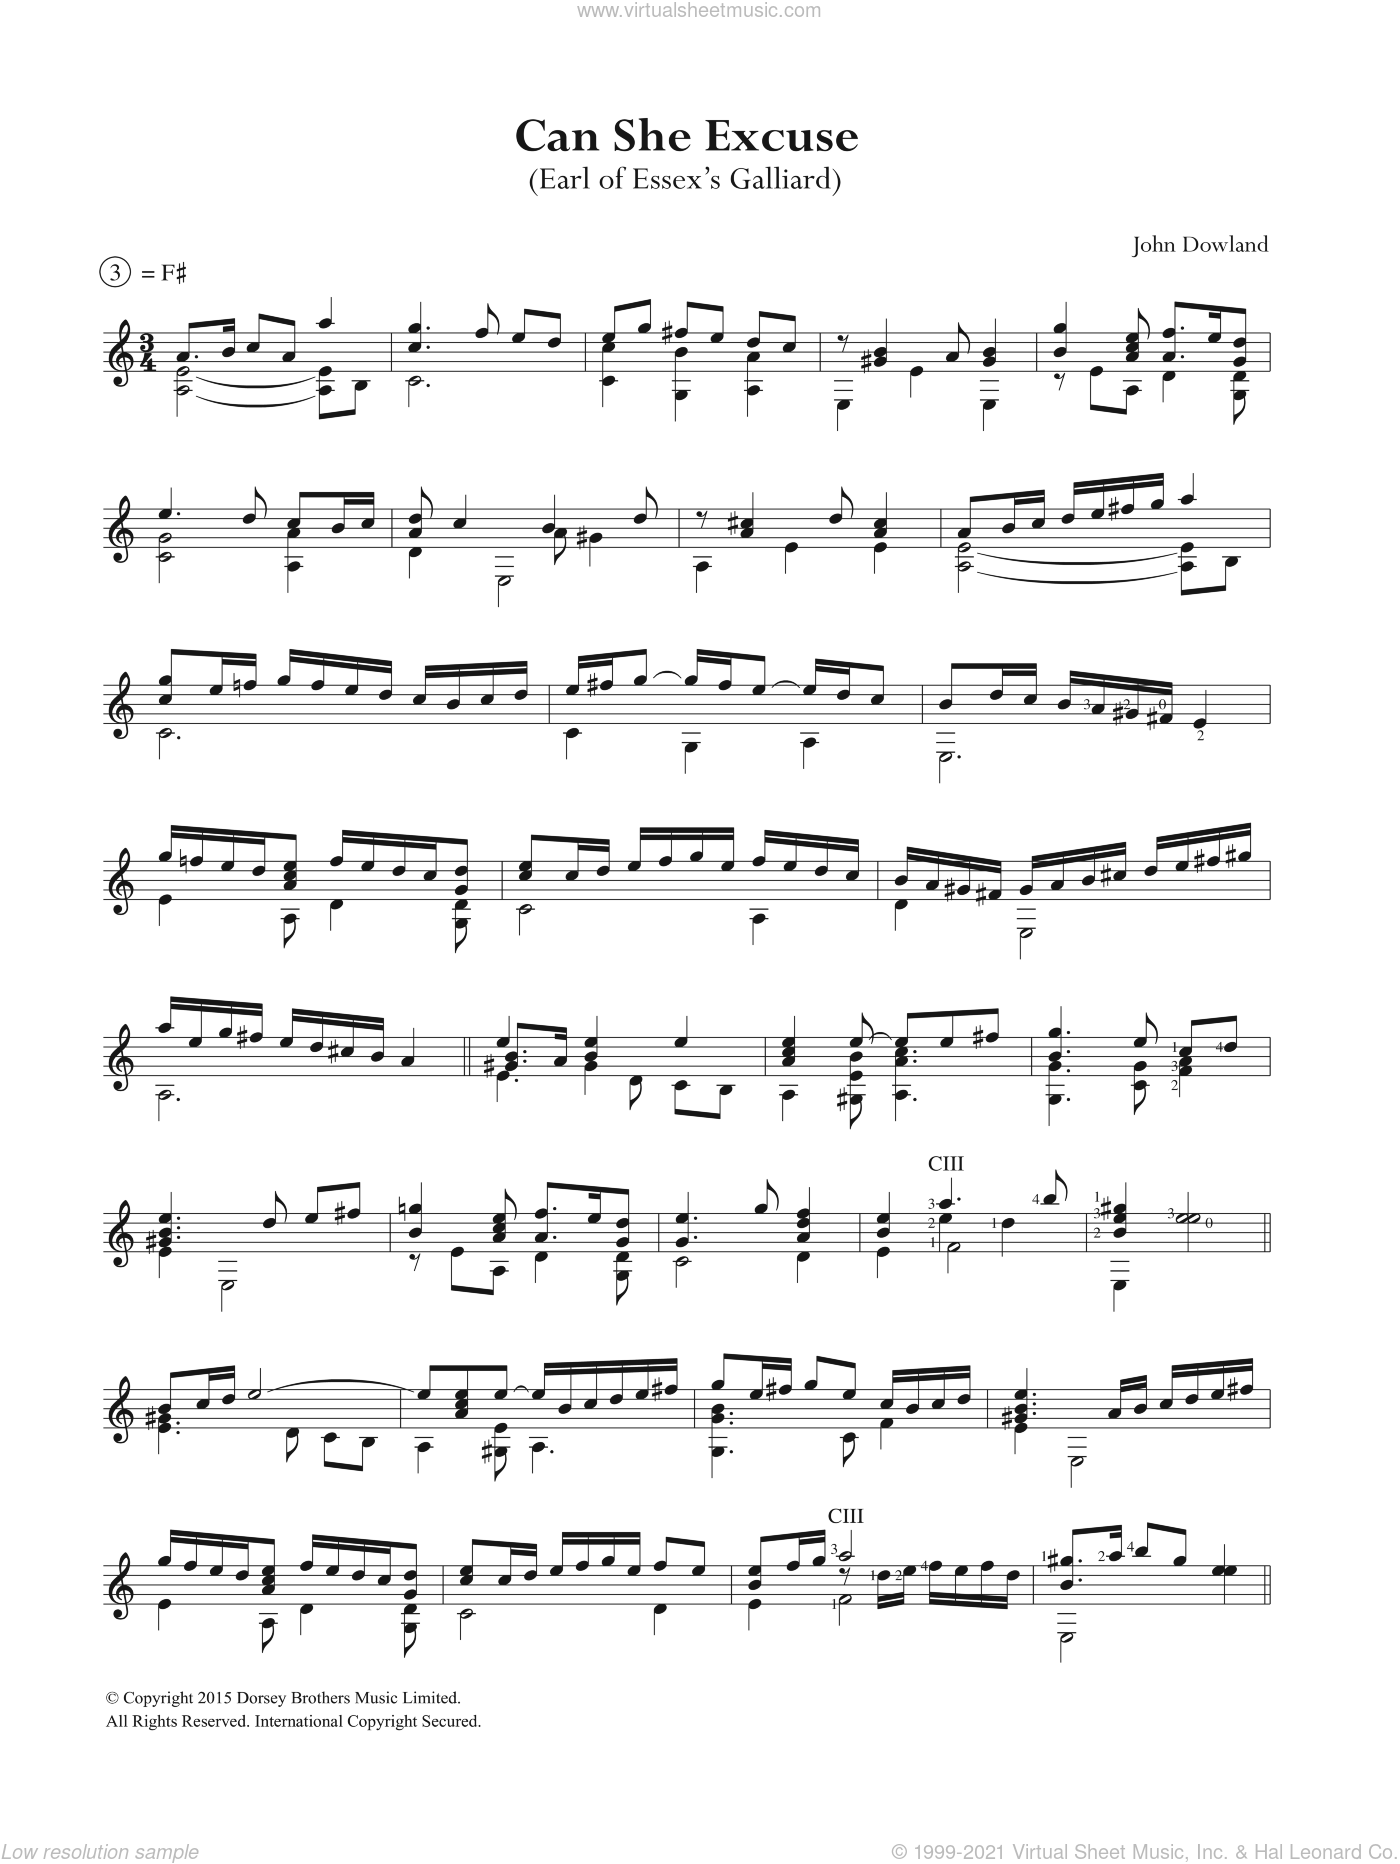 Can She Excuse sheet music for guitar solo (chords) by John Dowland, easy guitar (chords). Score Image Preview.